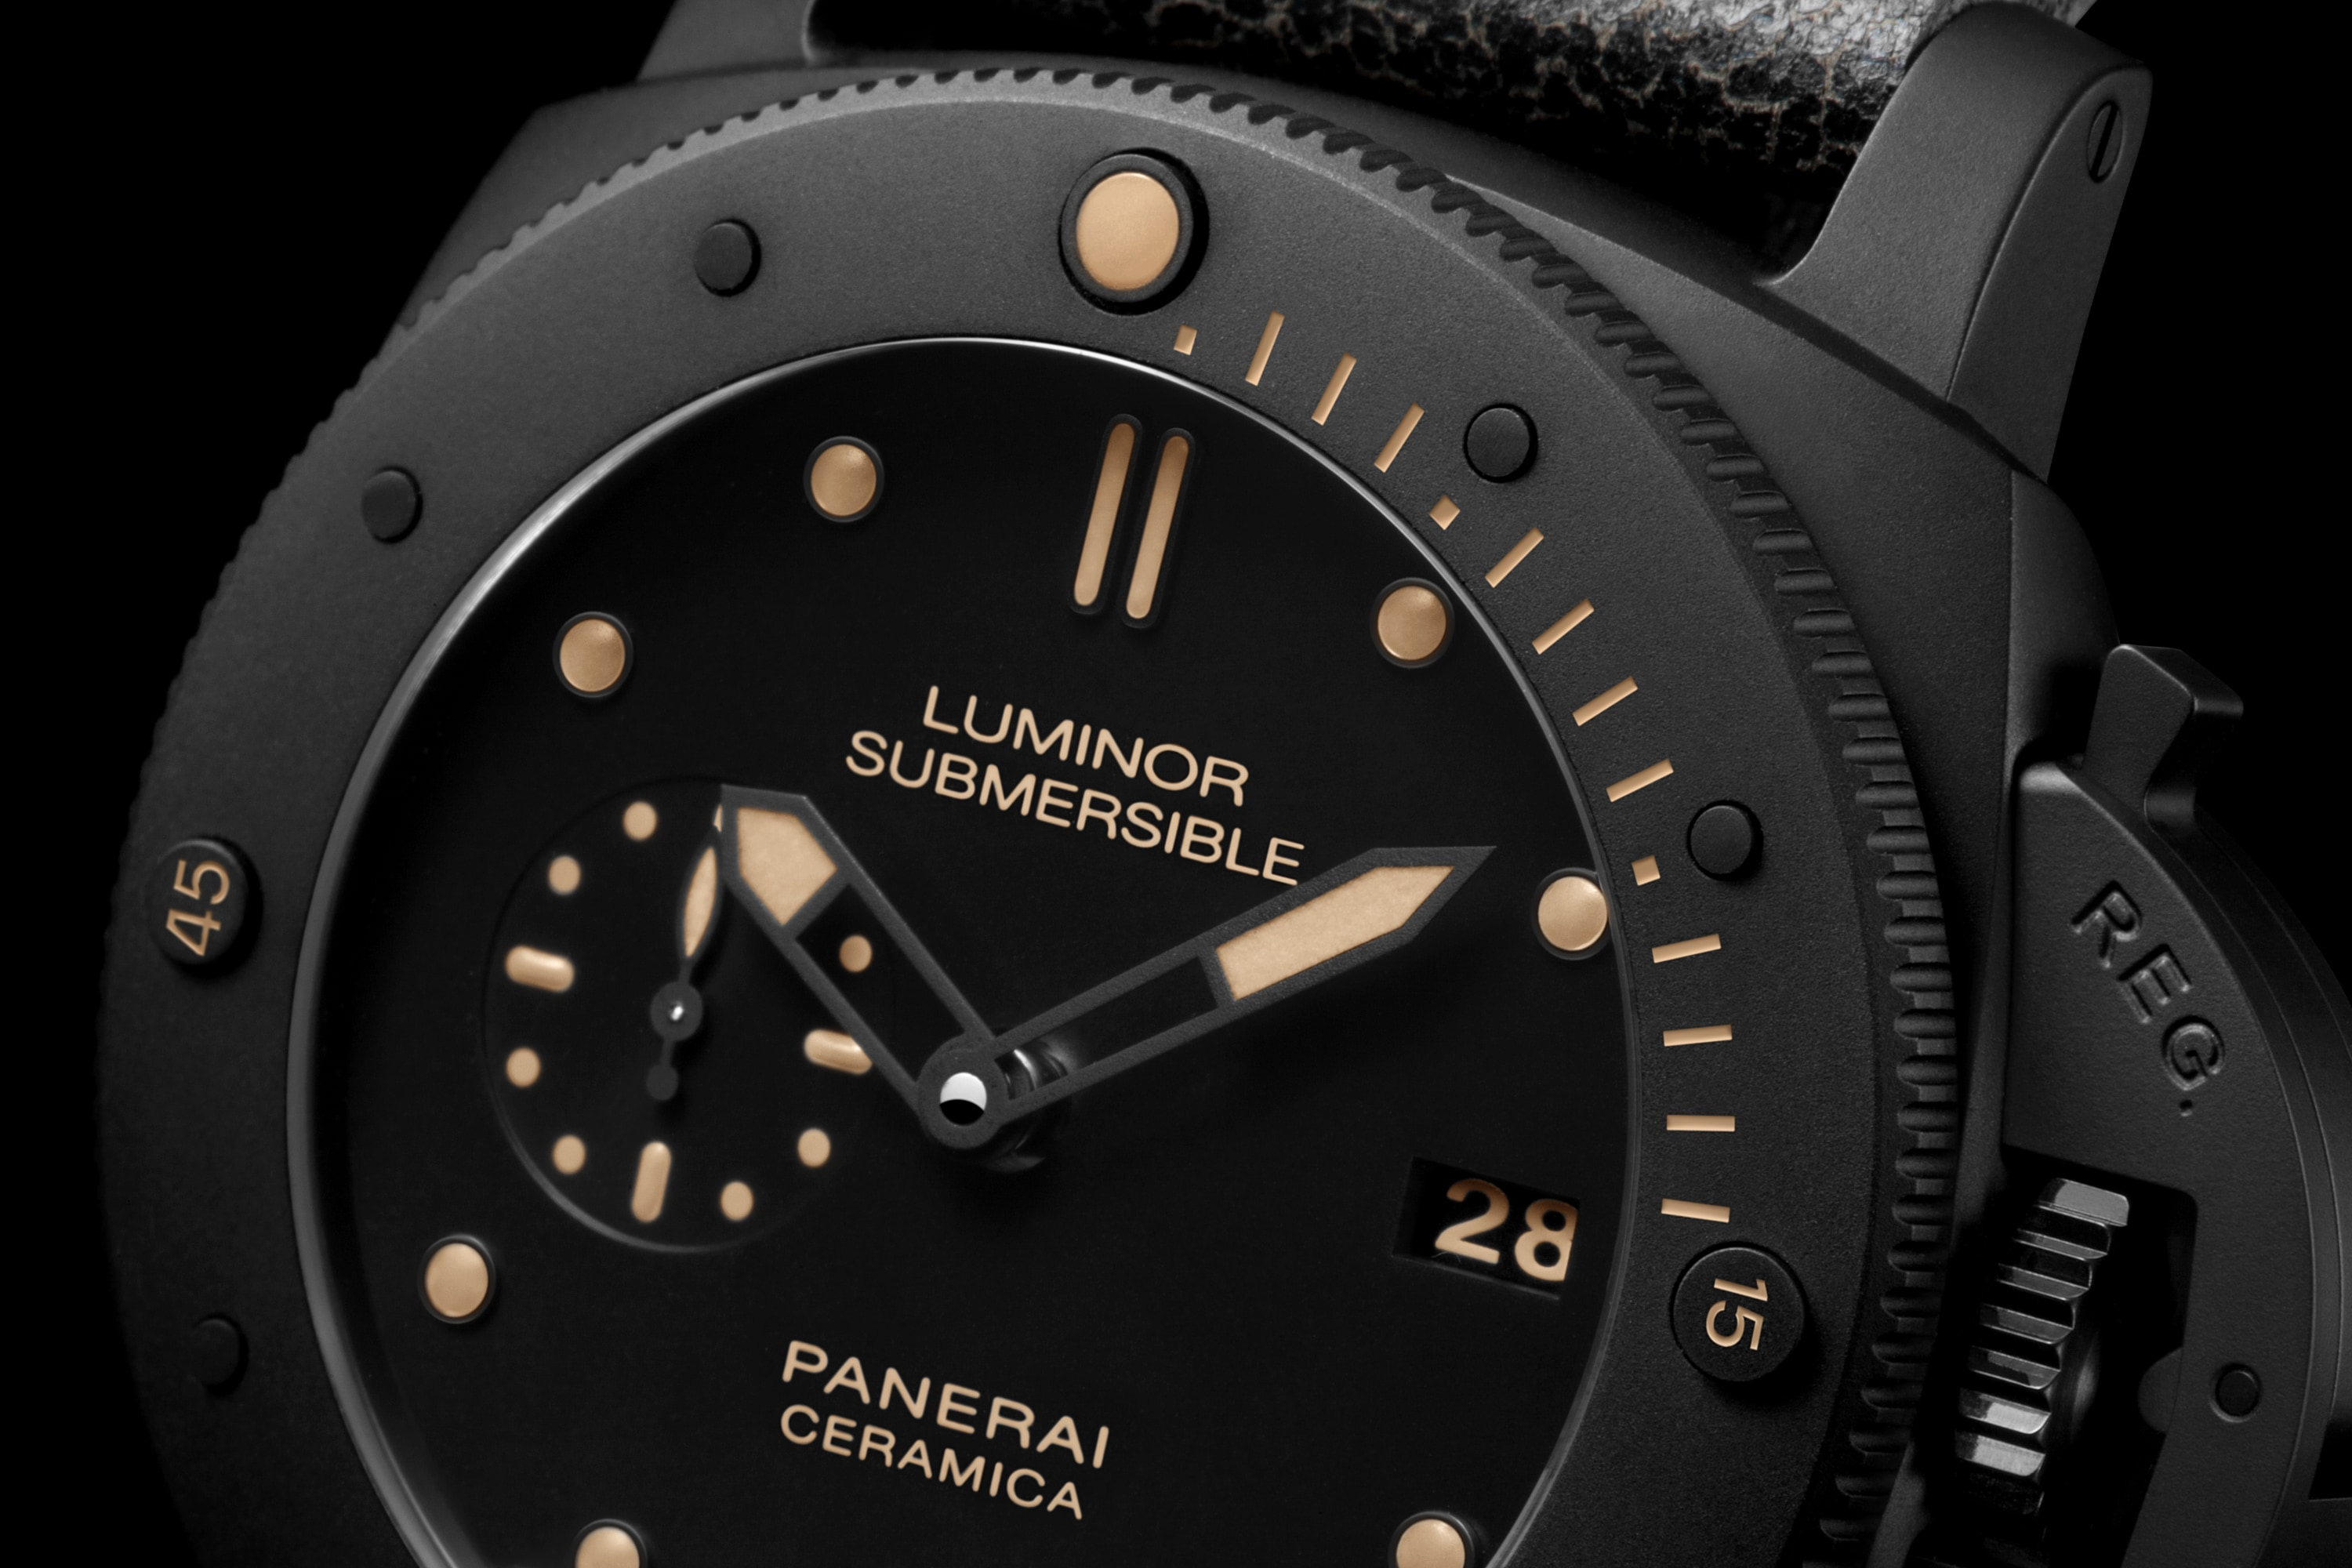 PNPAM00508 - Luminor Submersible 1950 3 Days Automatic Ceramica - 47mm